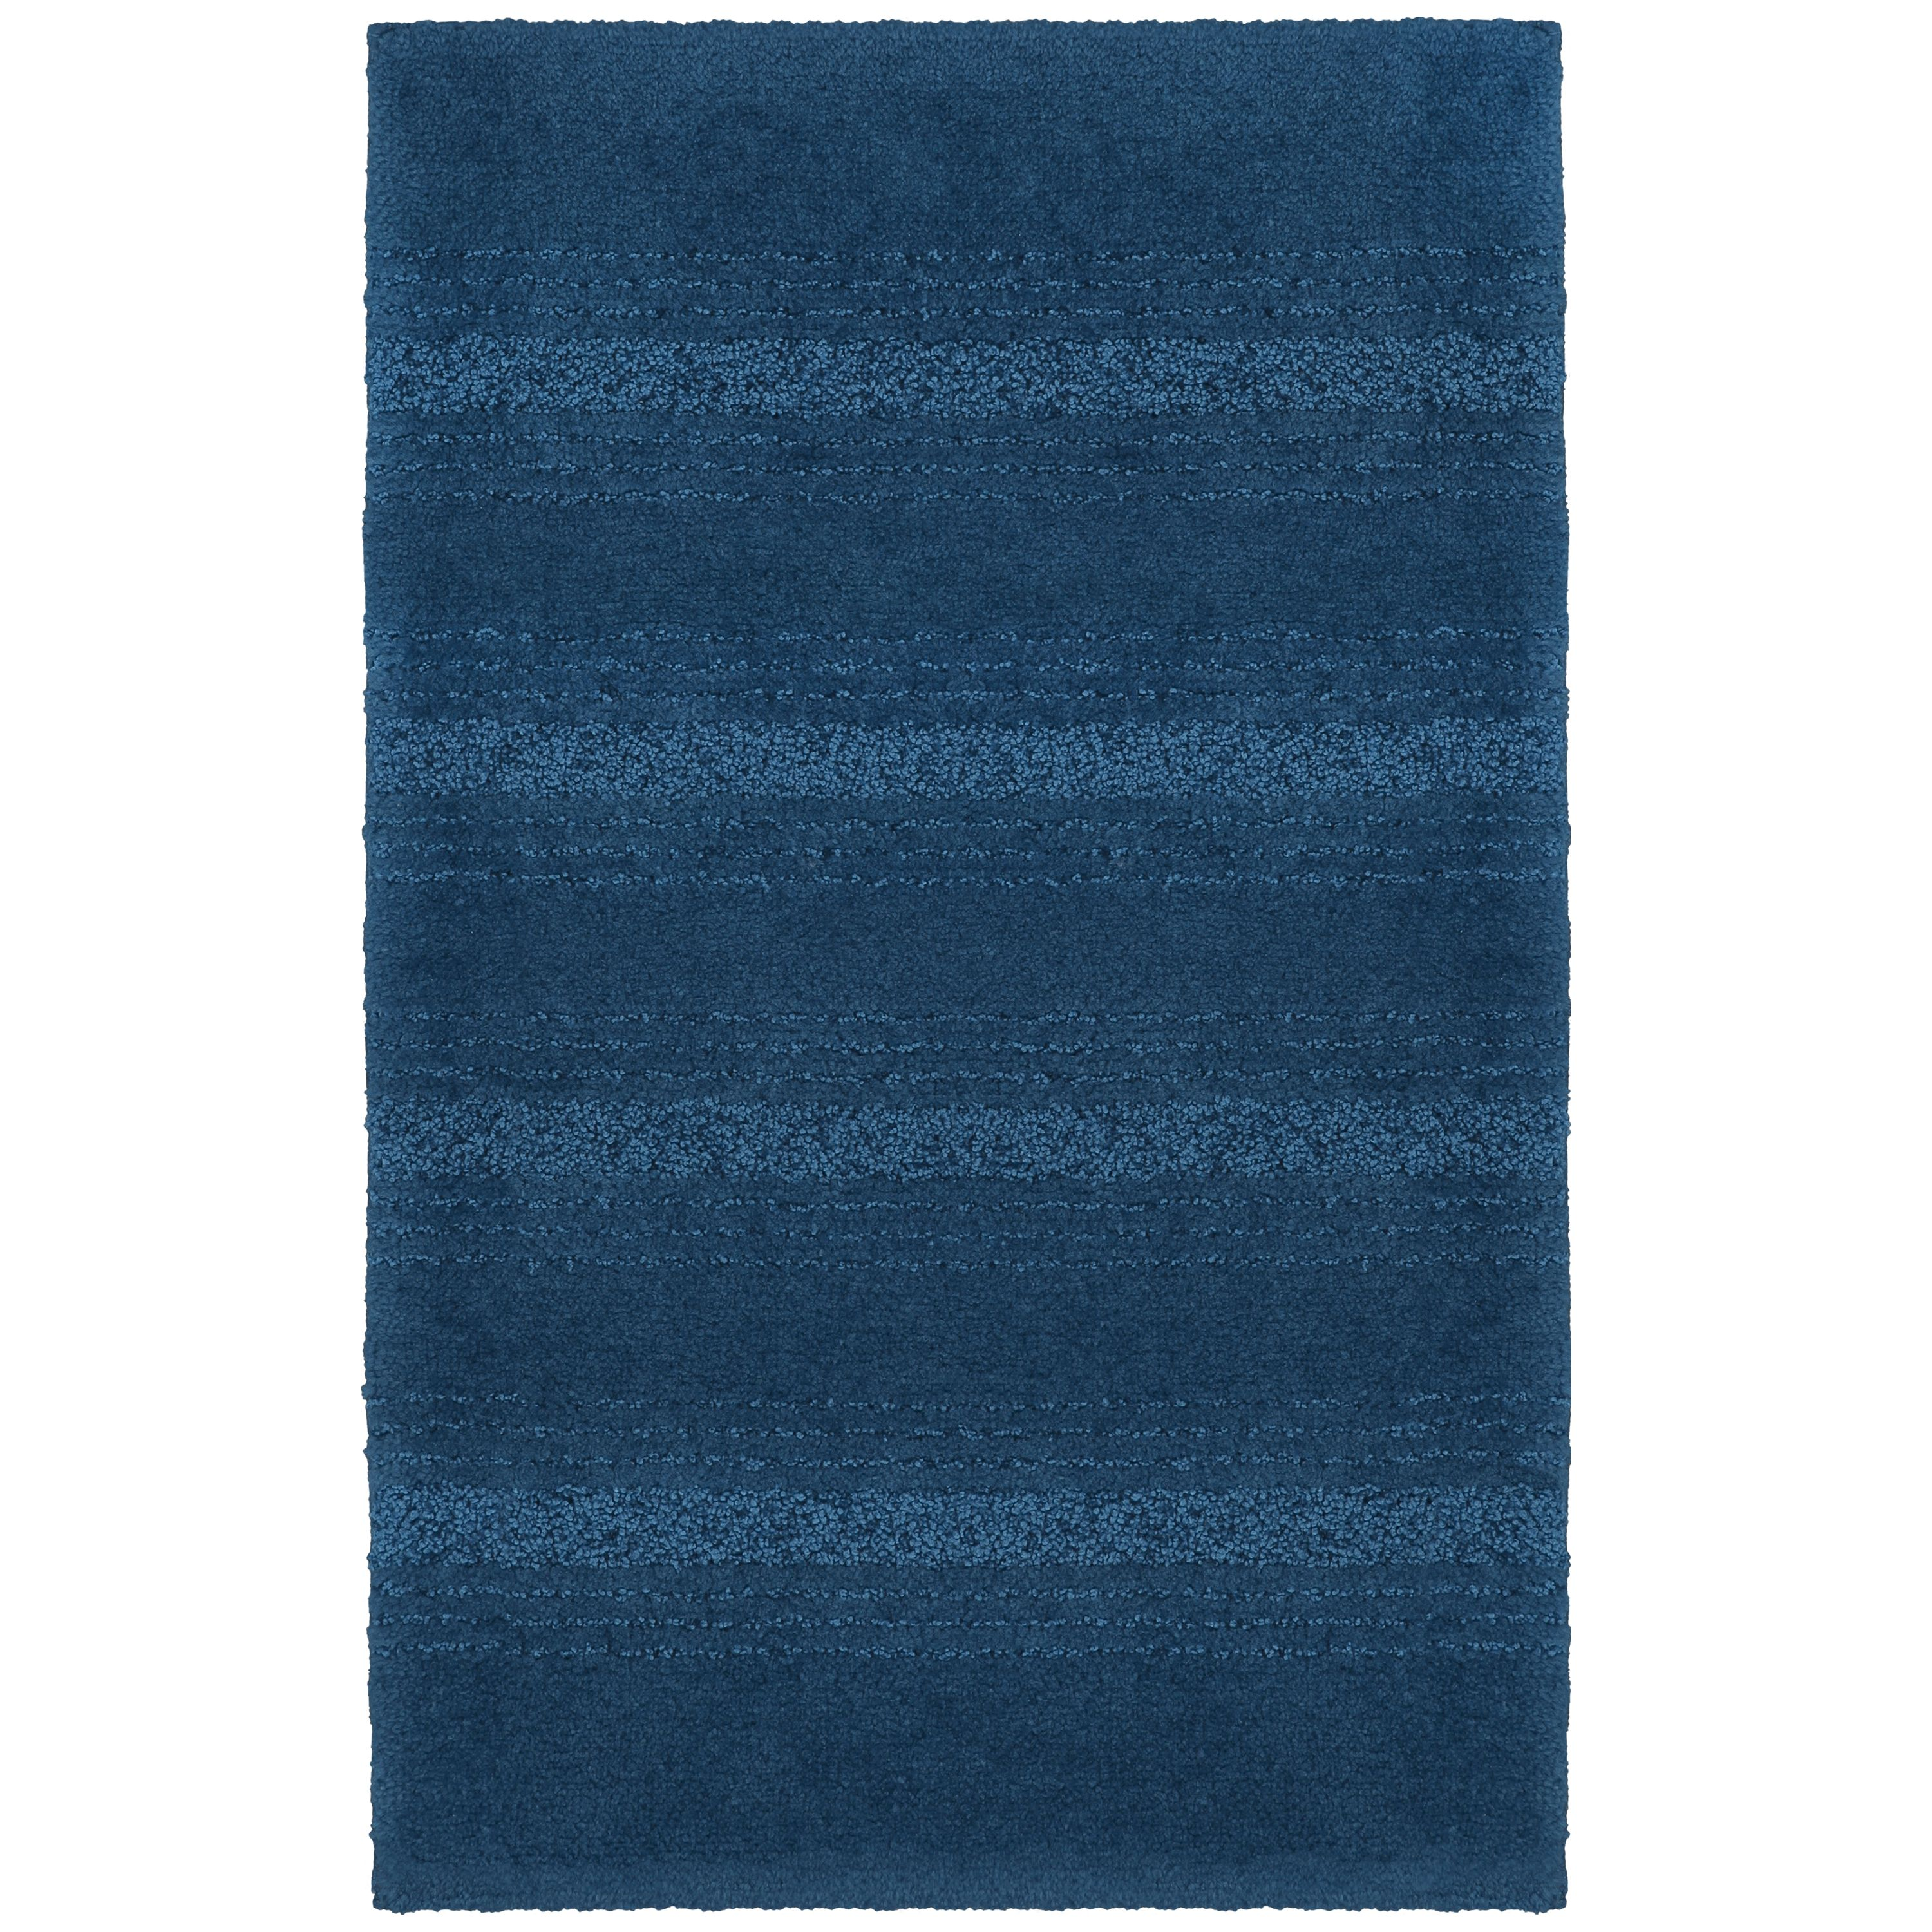 Better Homes & Gardens American Made Bath Rug Collection